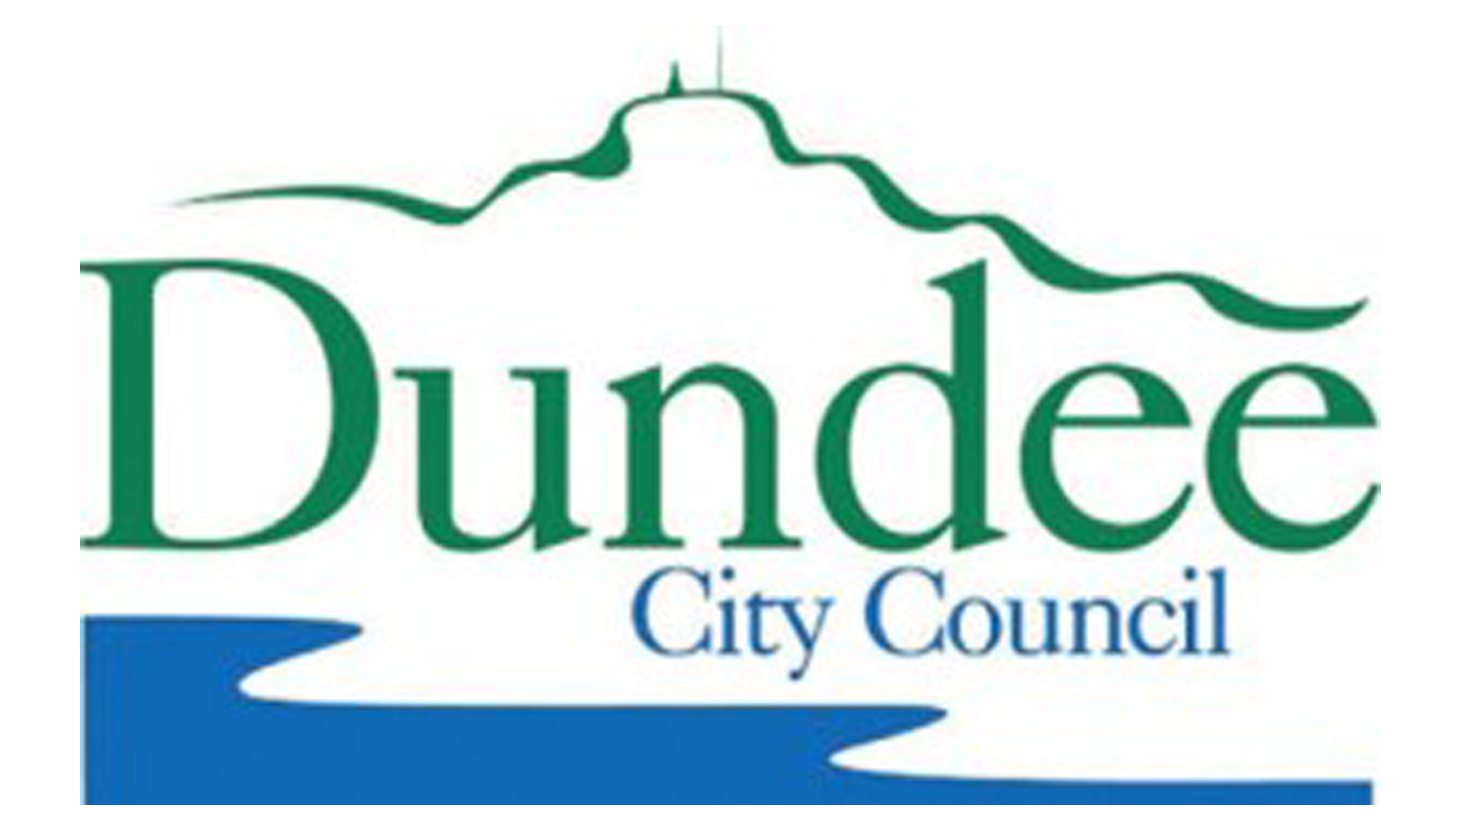 City Of Dundee Fl Phone Number